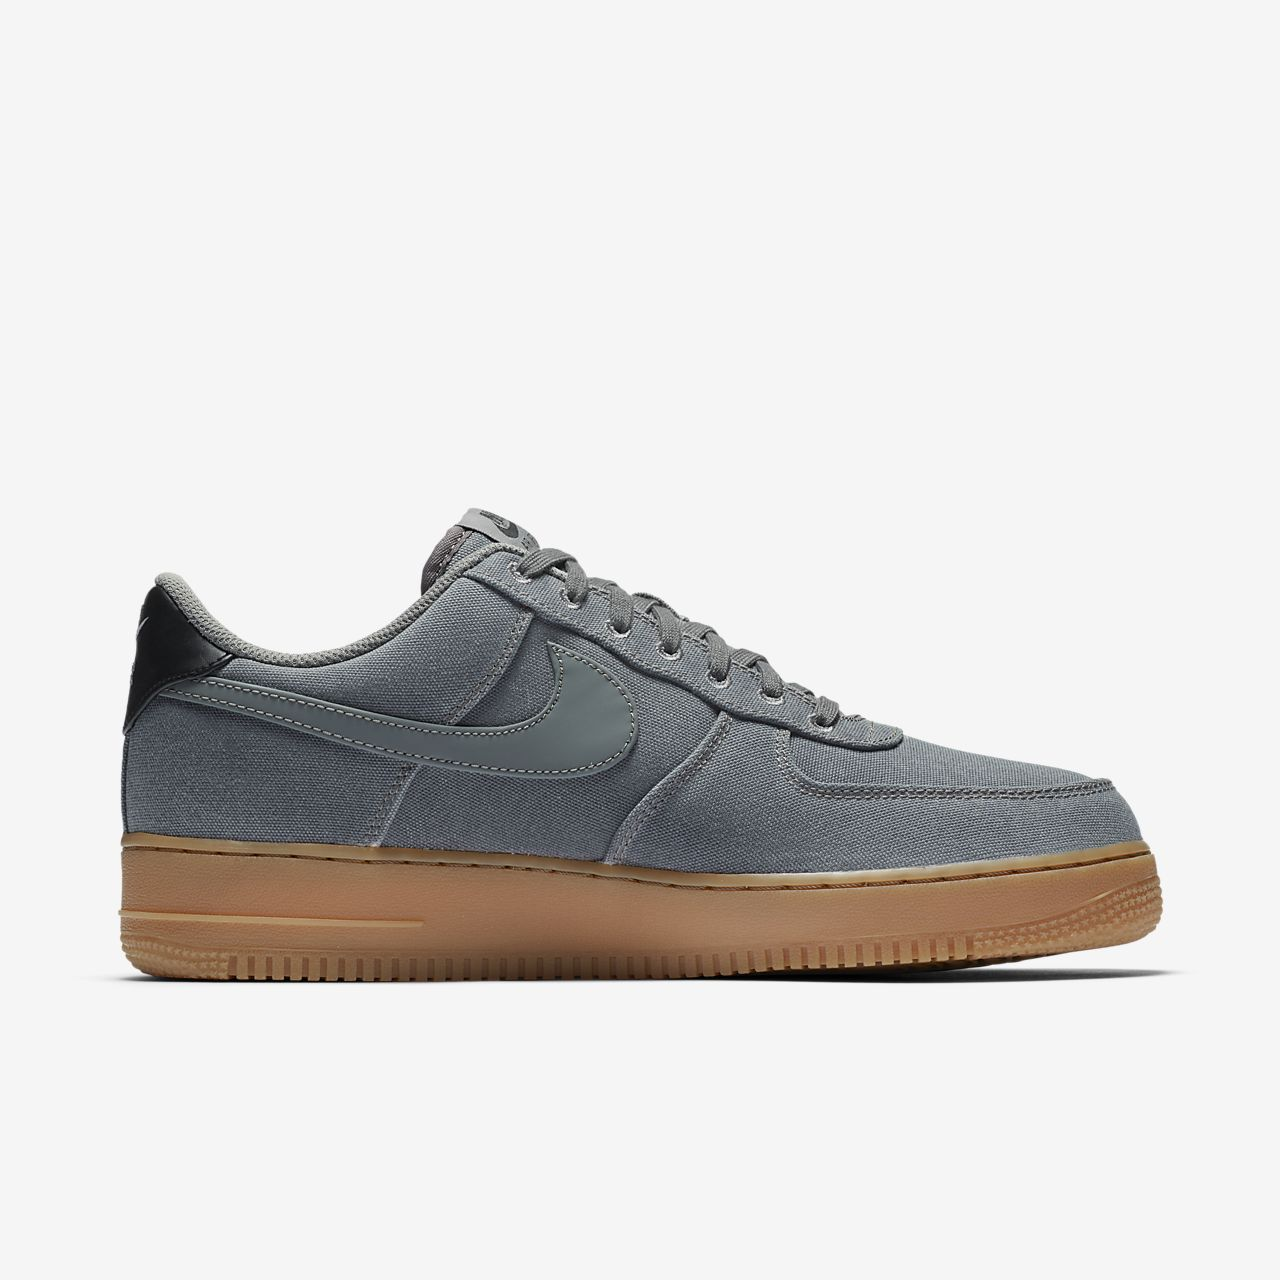 HommeFr Lv8 Air '07 Style 1 Chaussure Pour Force Nike SqMGLzpUV